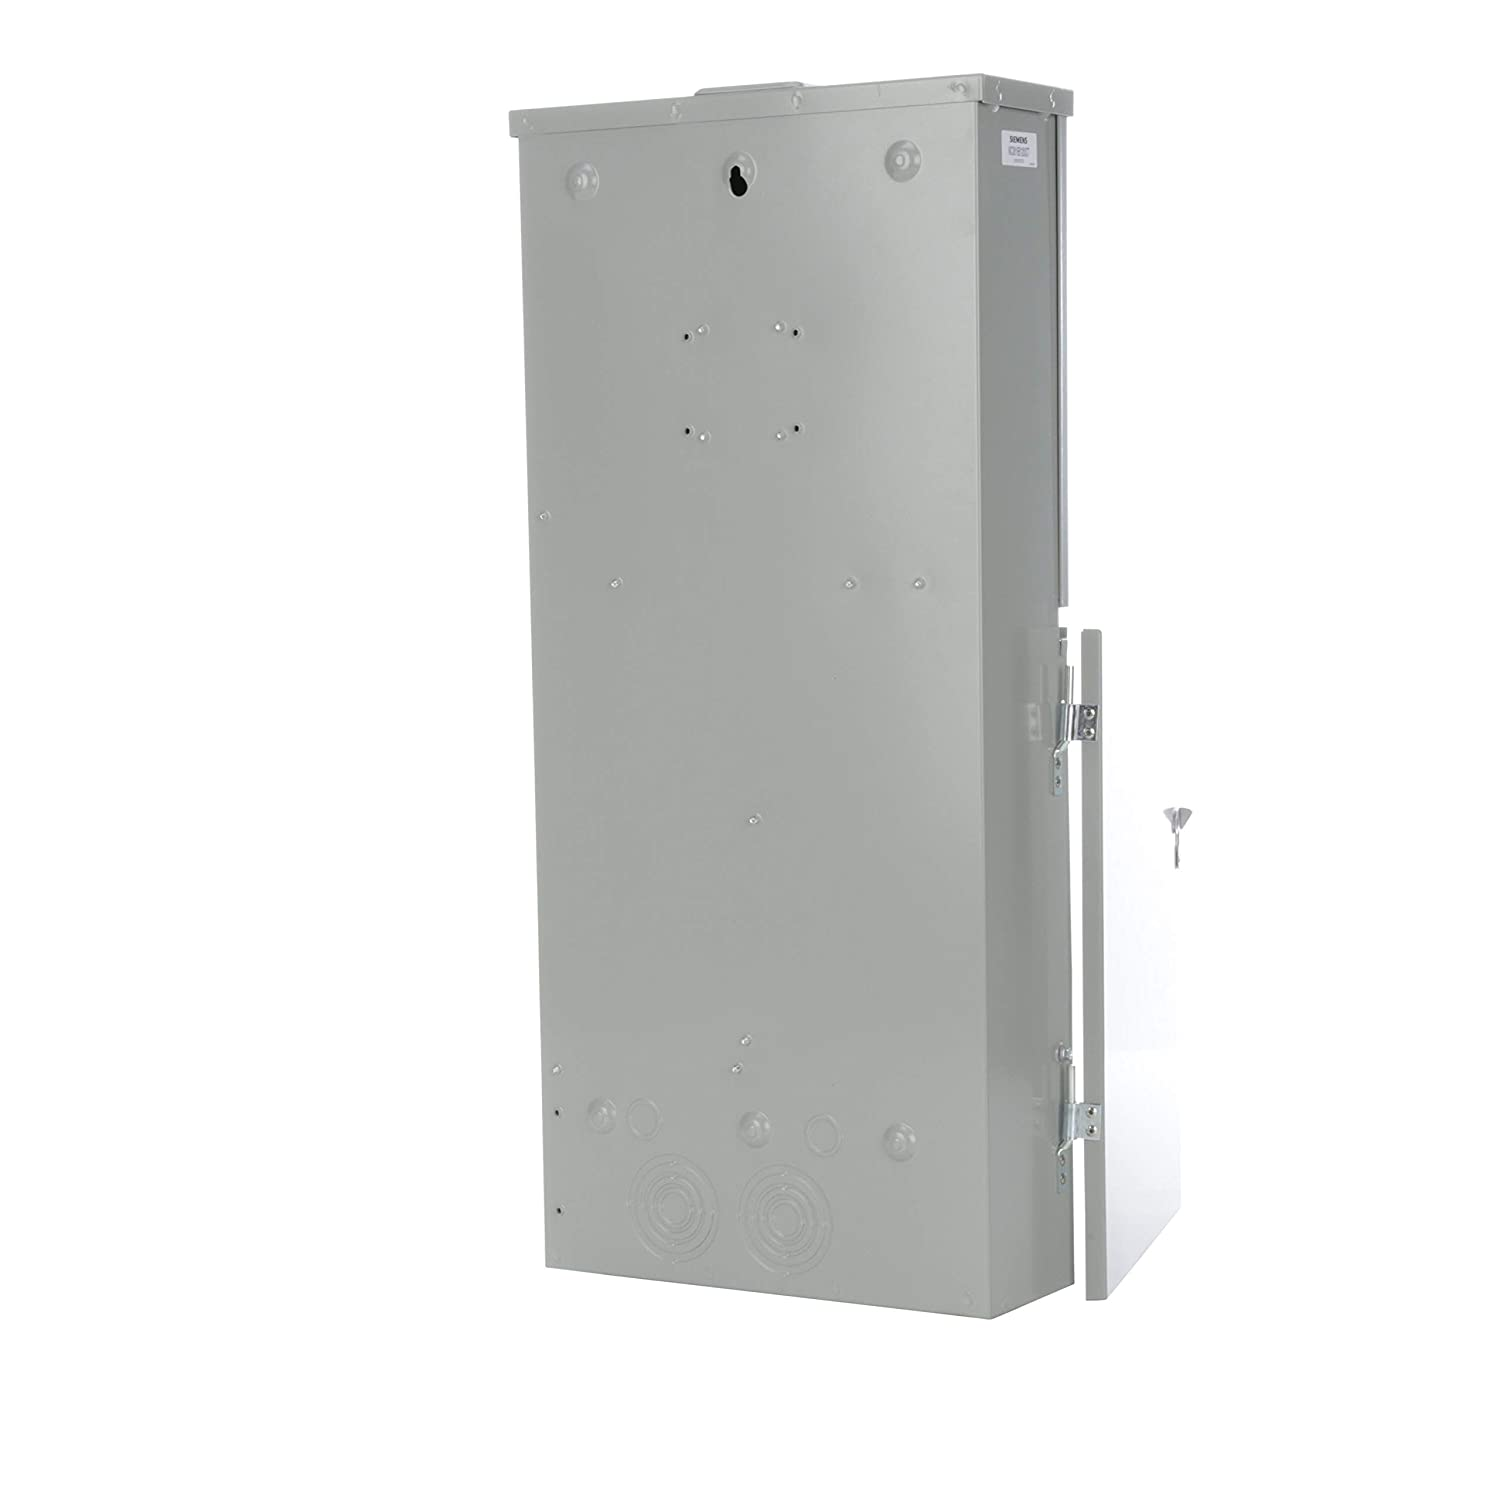 Siemens Mc0816b1200ct 8 Space 16 Circuit 200 Amp Main Breaker Installation With A Pb30 Inlet On Cutler Hammer Meter Combination Ring Type Cover Panels